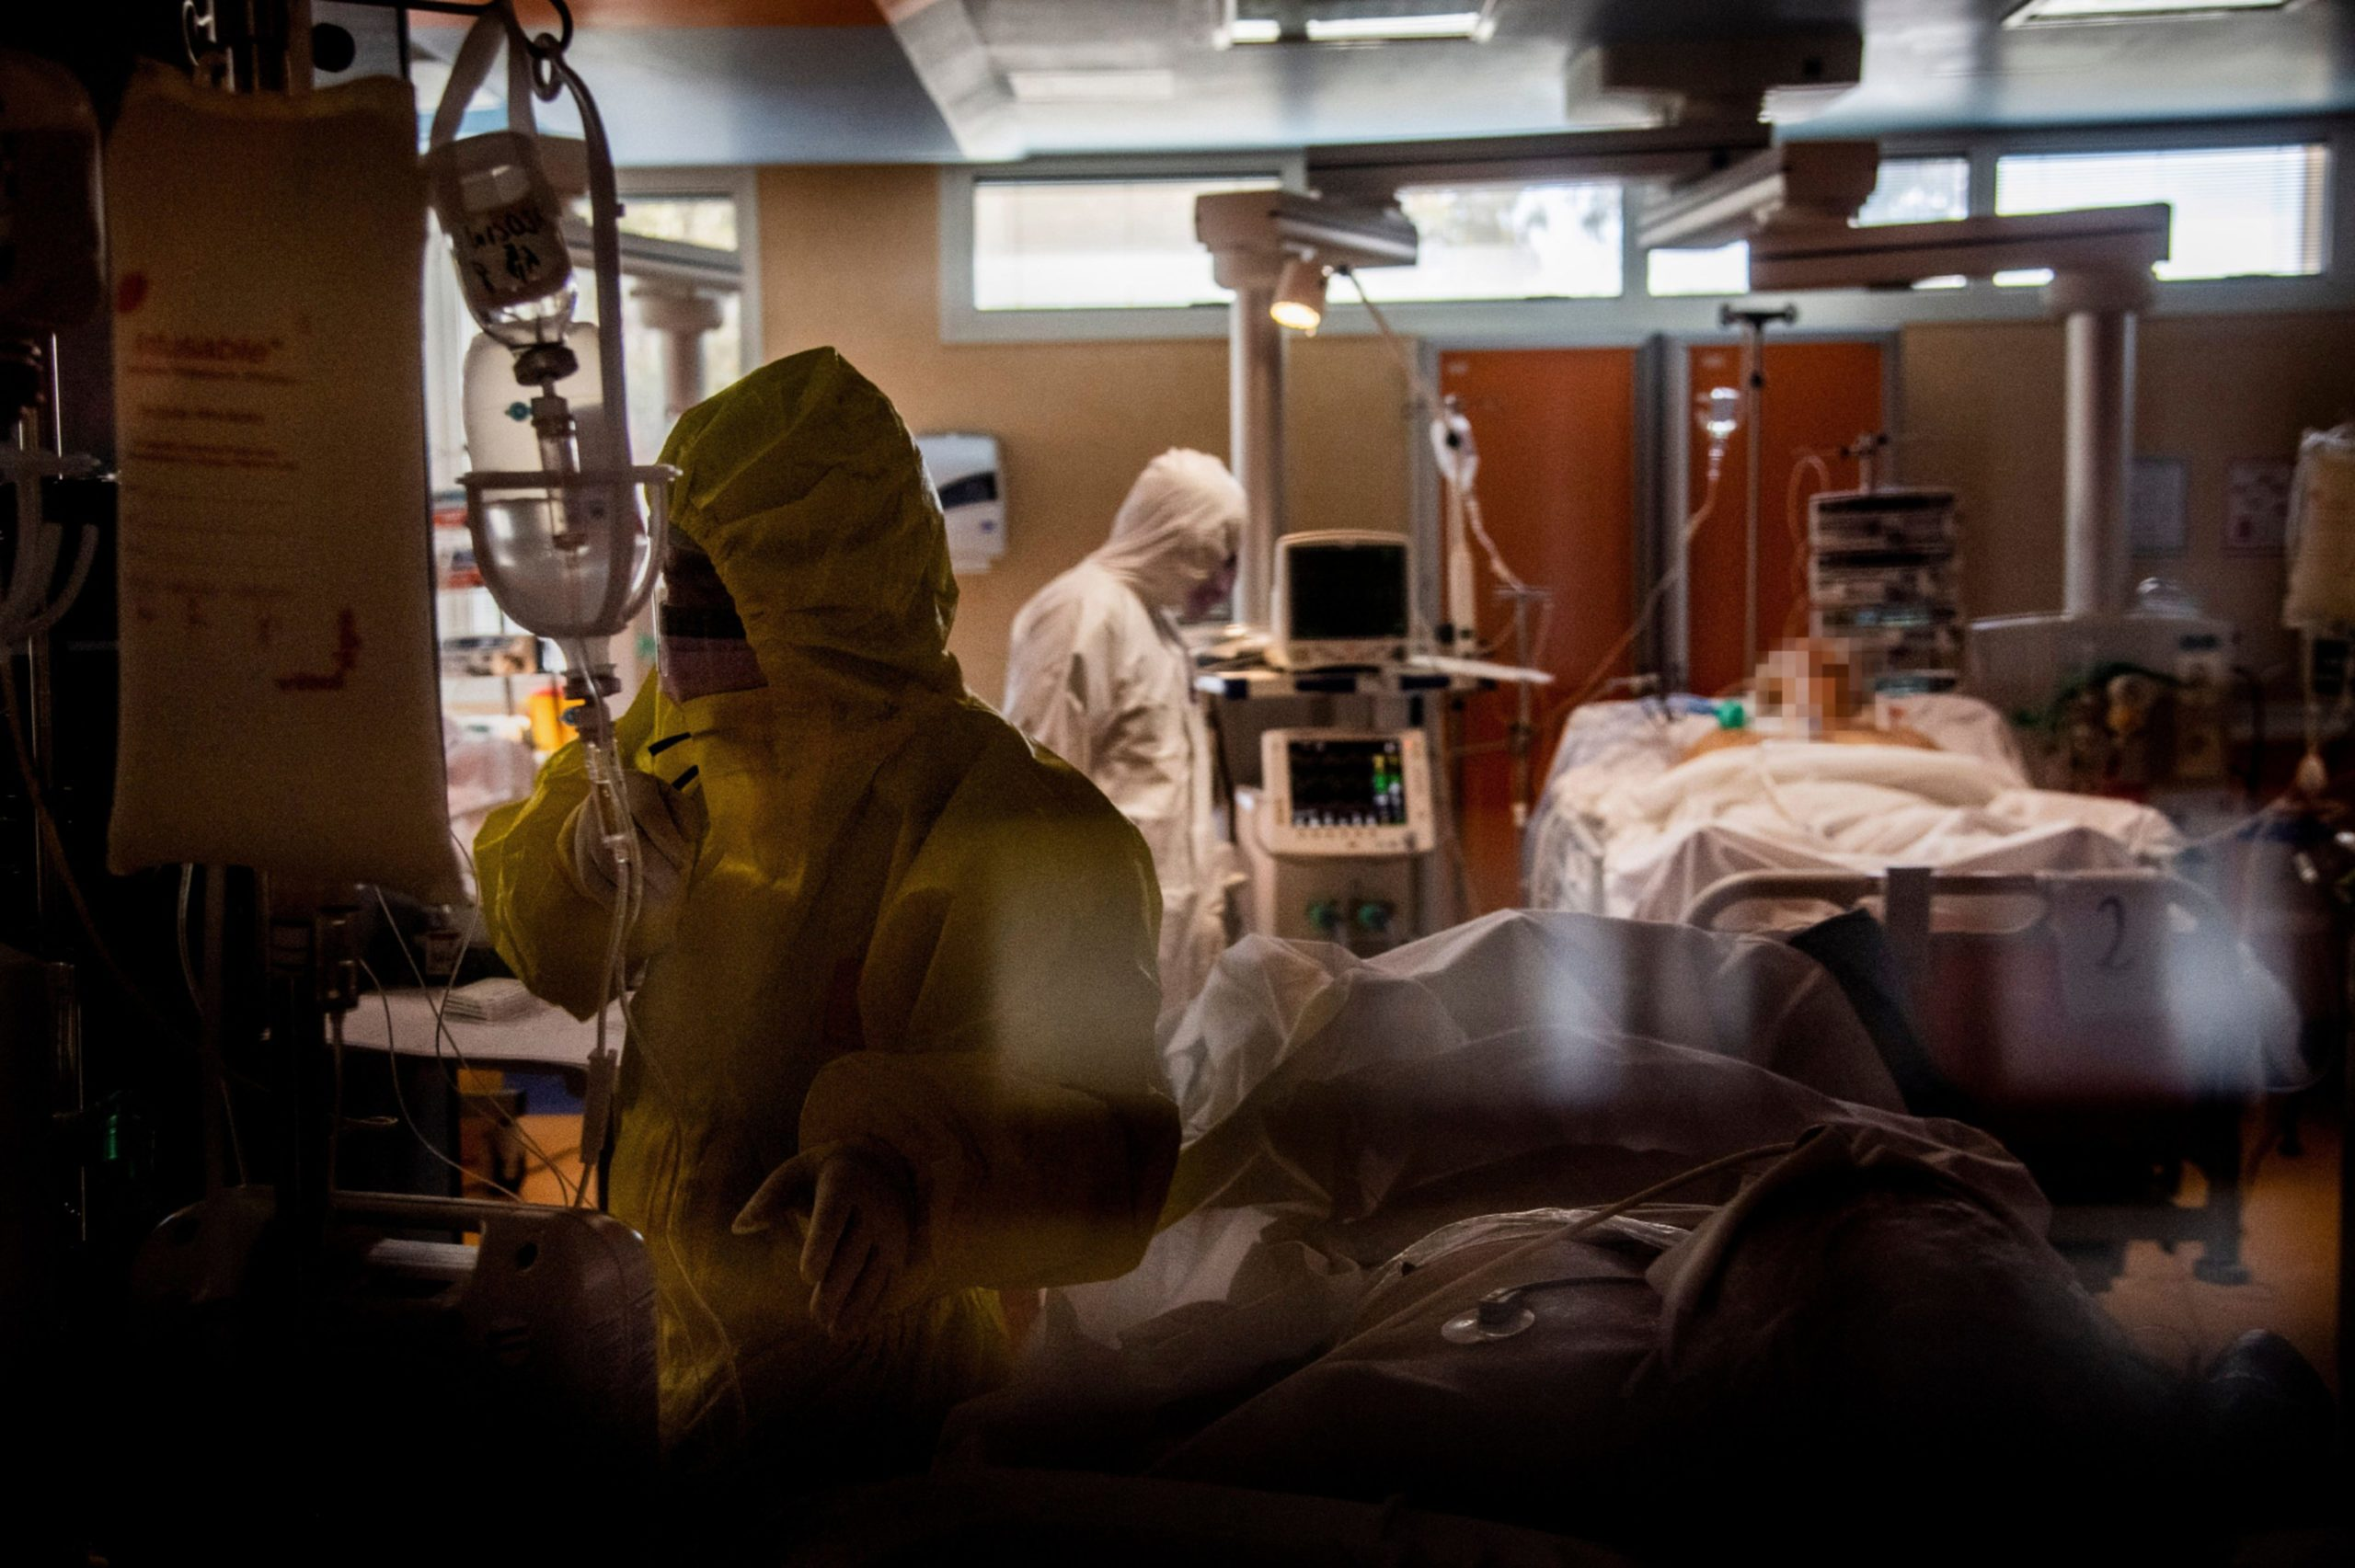 Nurses and doctors working on hospitalised coronavirus patients in the intensive care unit of a hospital in Rome. There are concerns that hospitals here might soon be facing similar pressures on intensive care units.